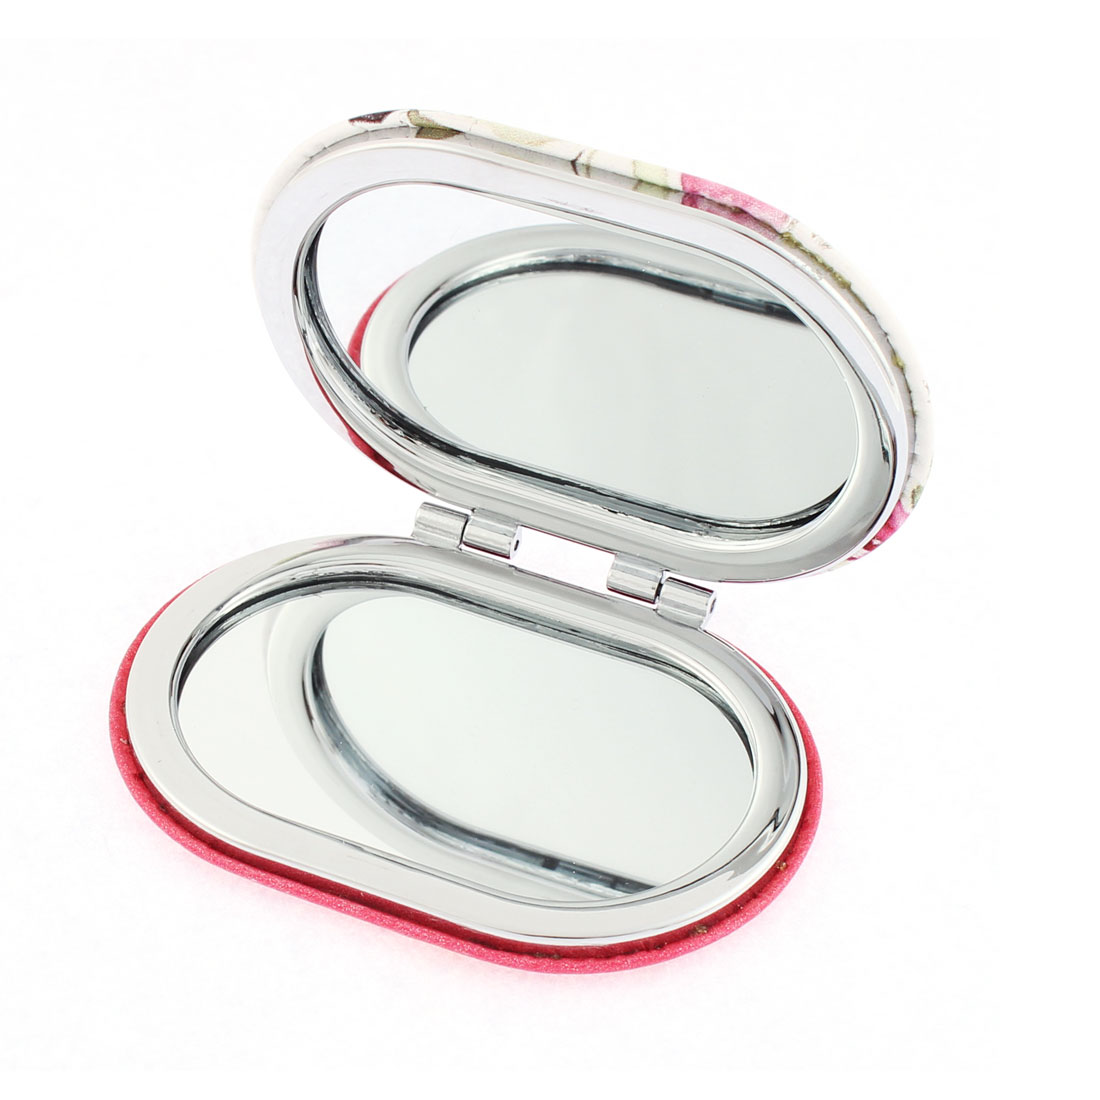 Oval Shaped Dual Side Magnify Folded Purse Pocket Cosmetic Compact Mirror